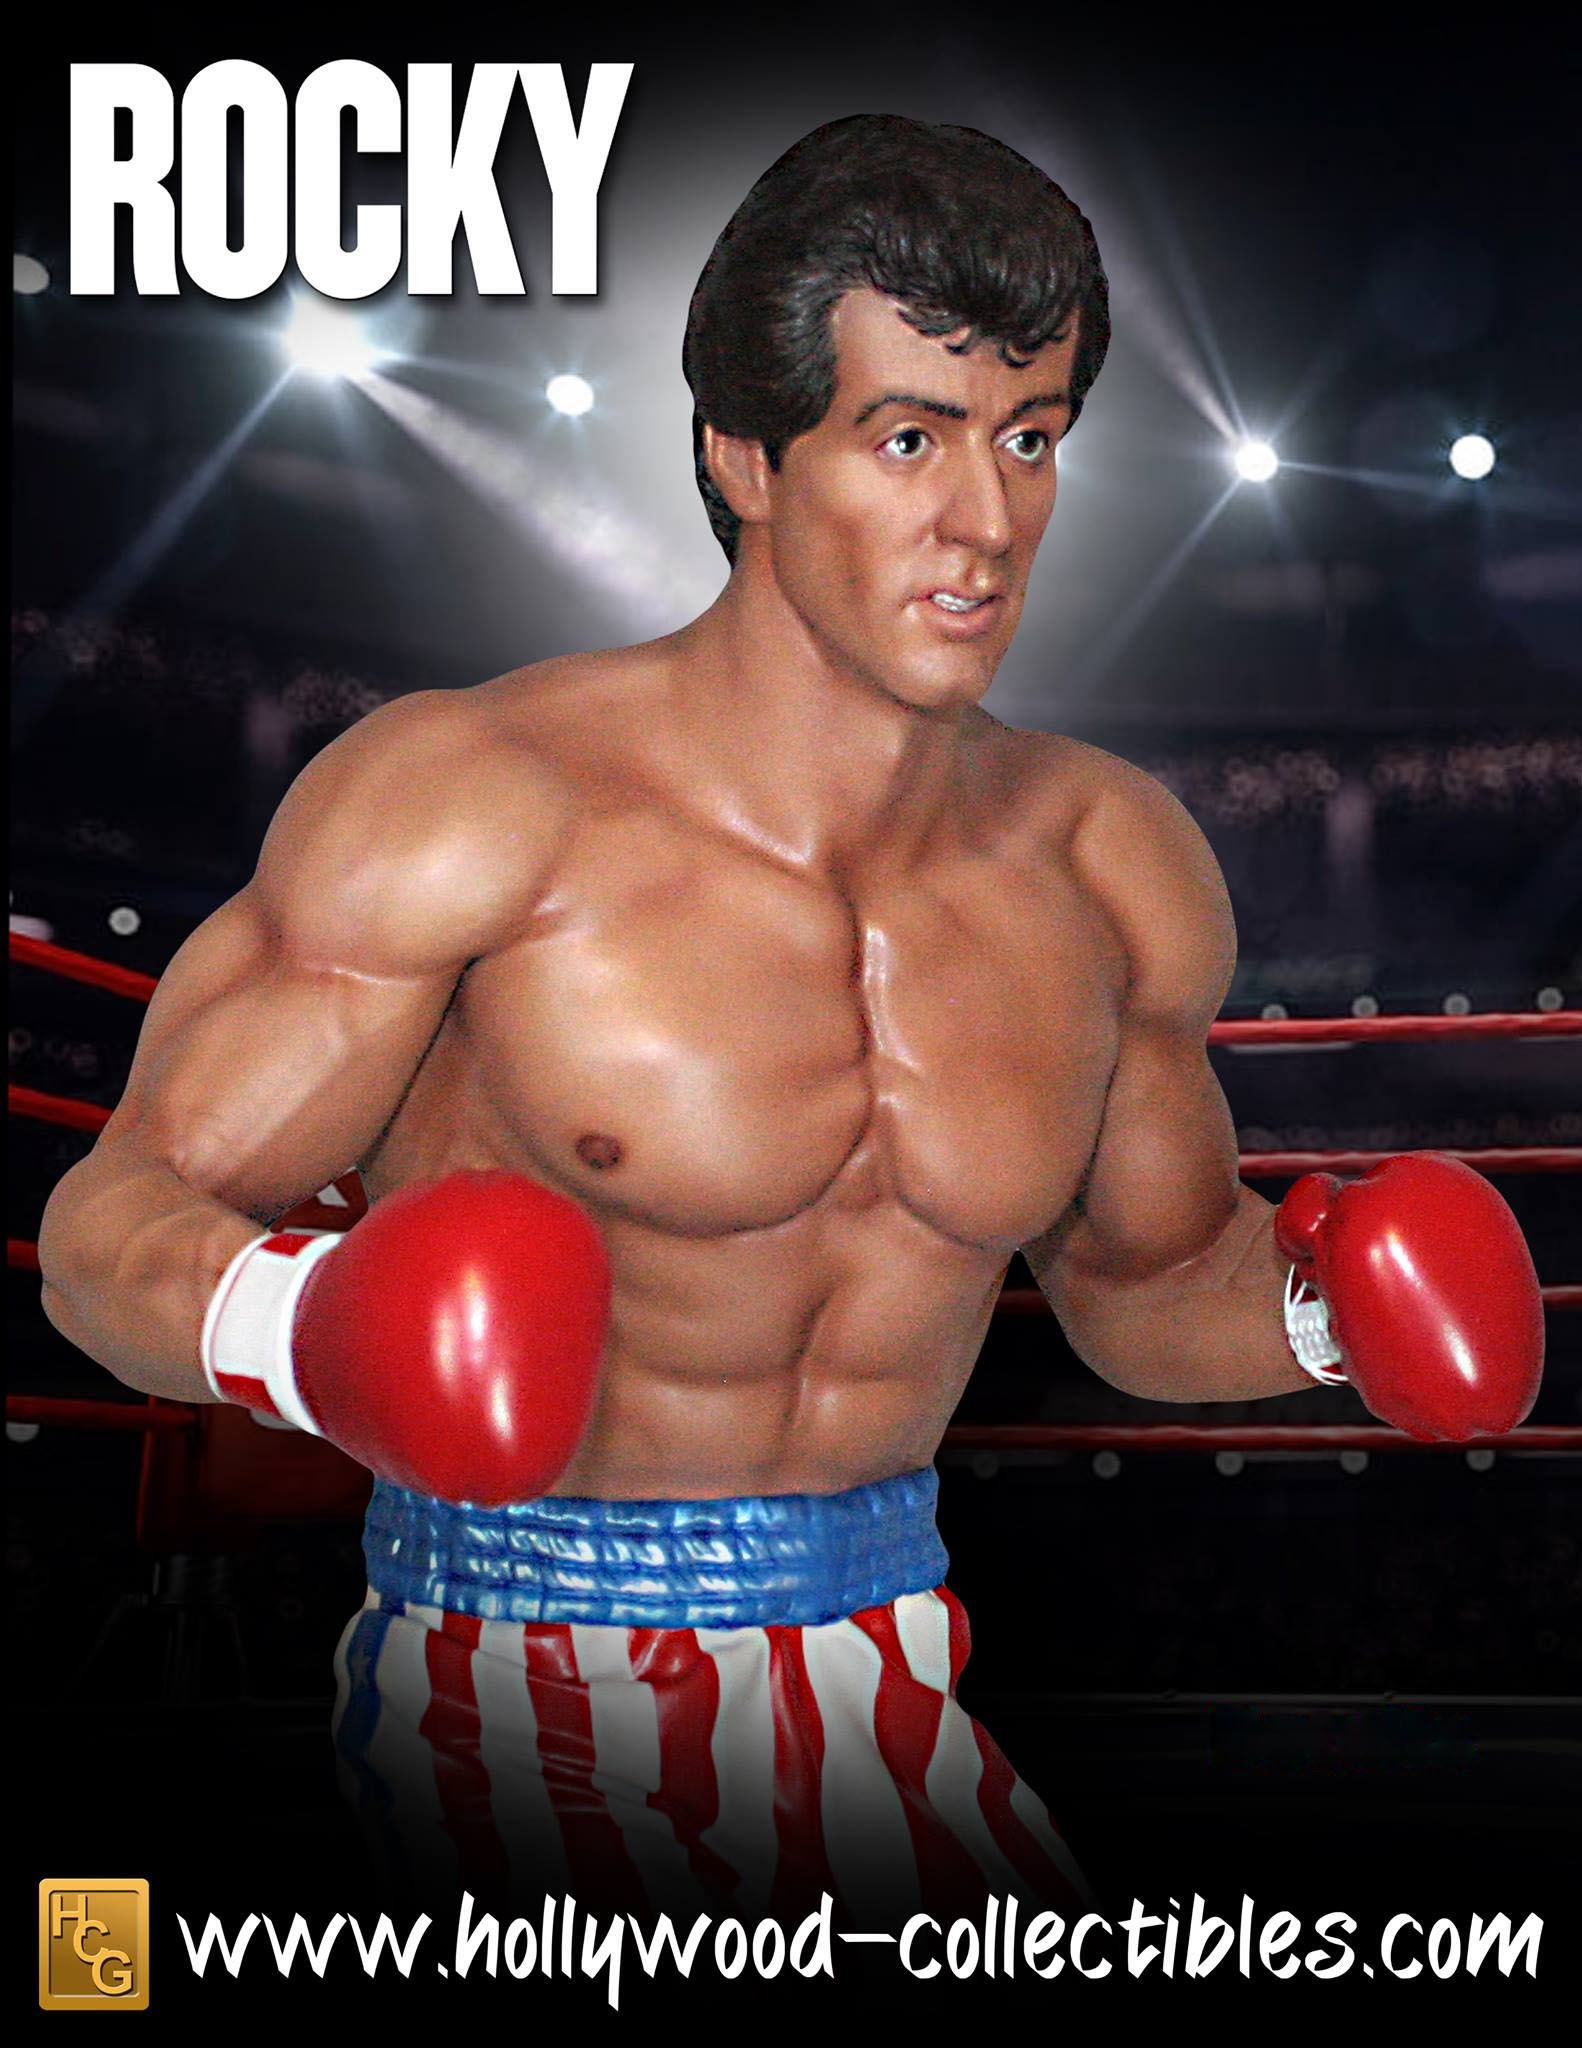 Rocky Statue by Hollywood Collectibles